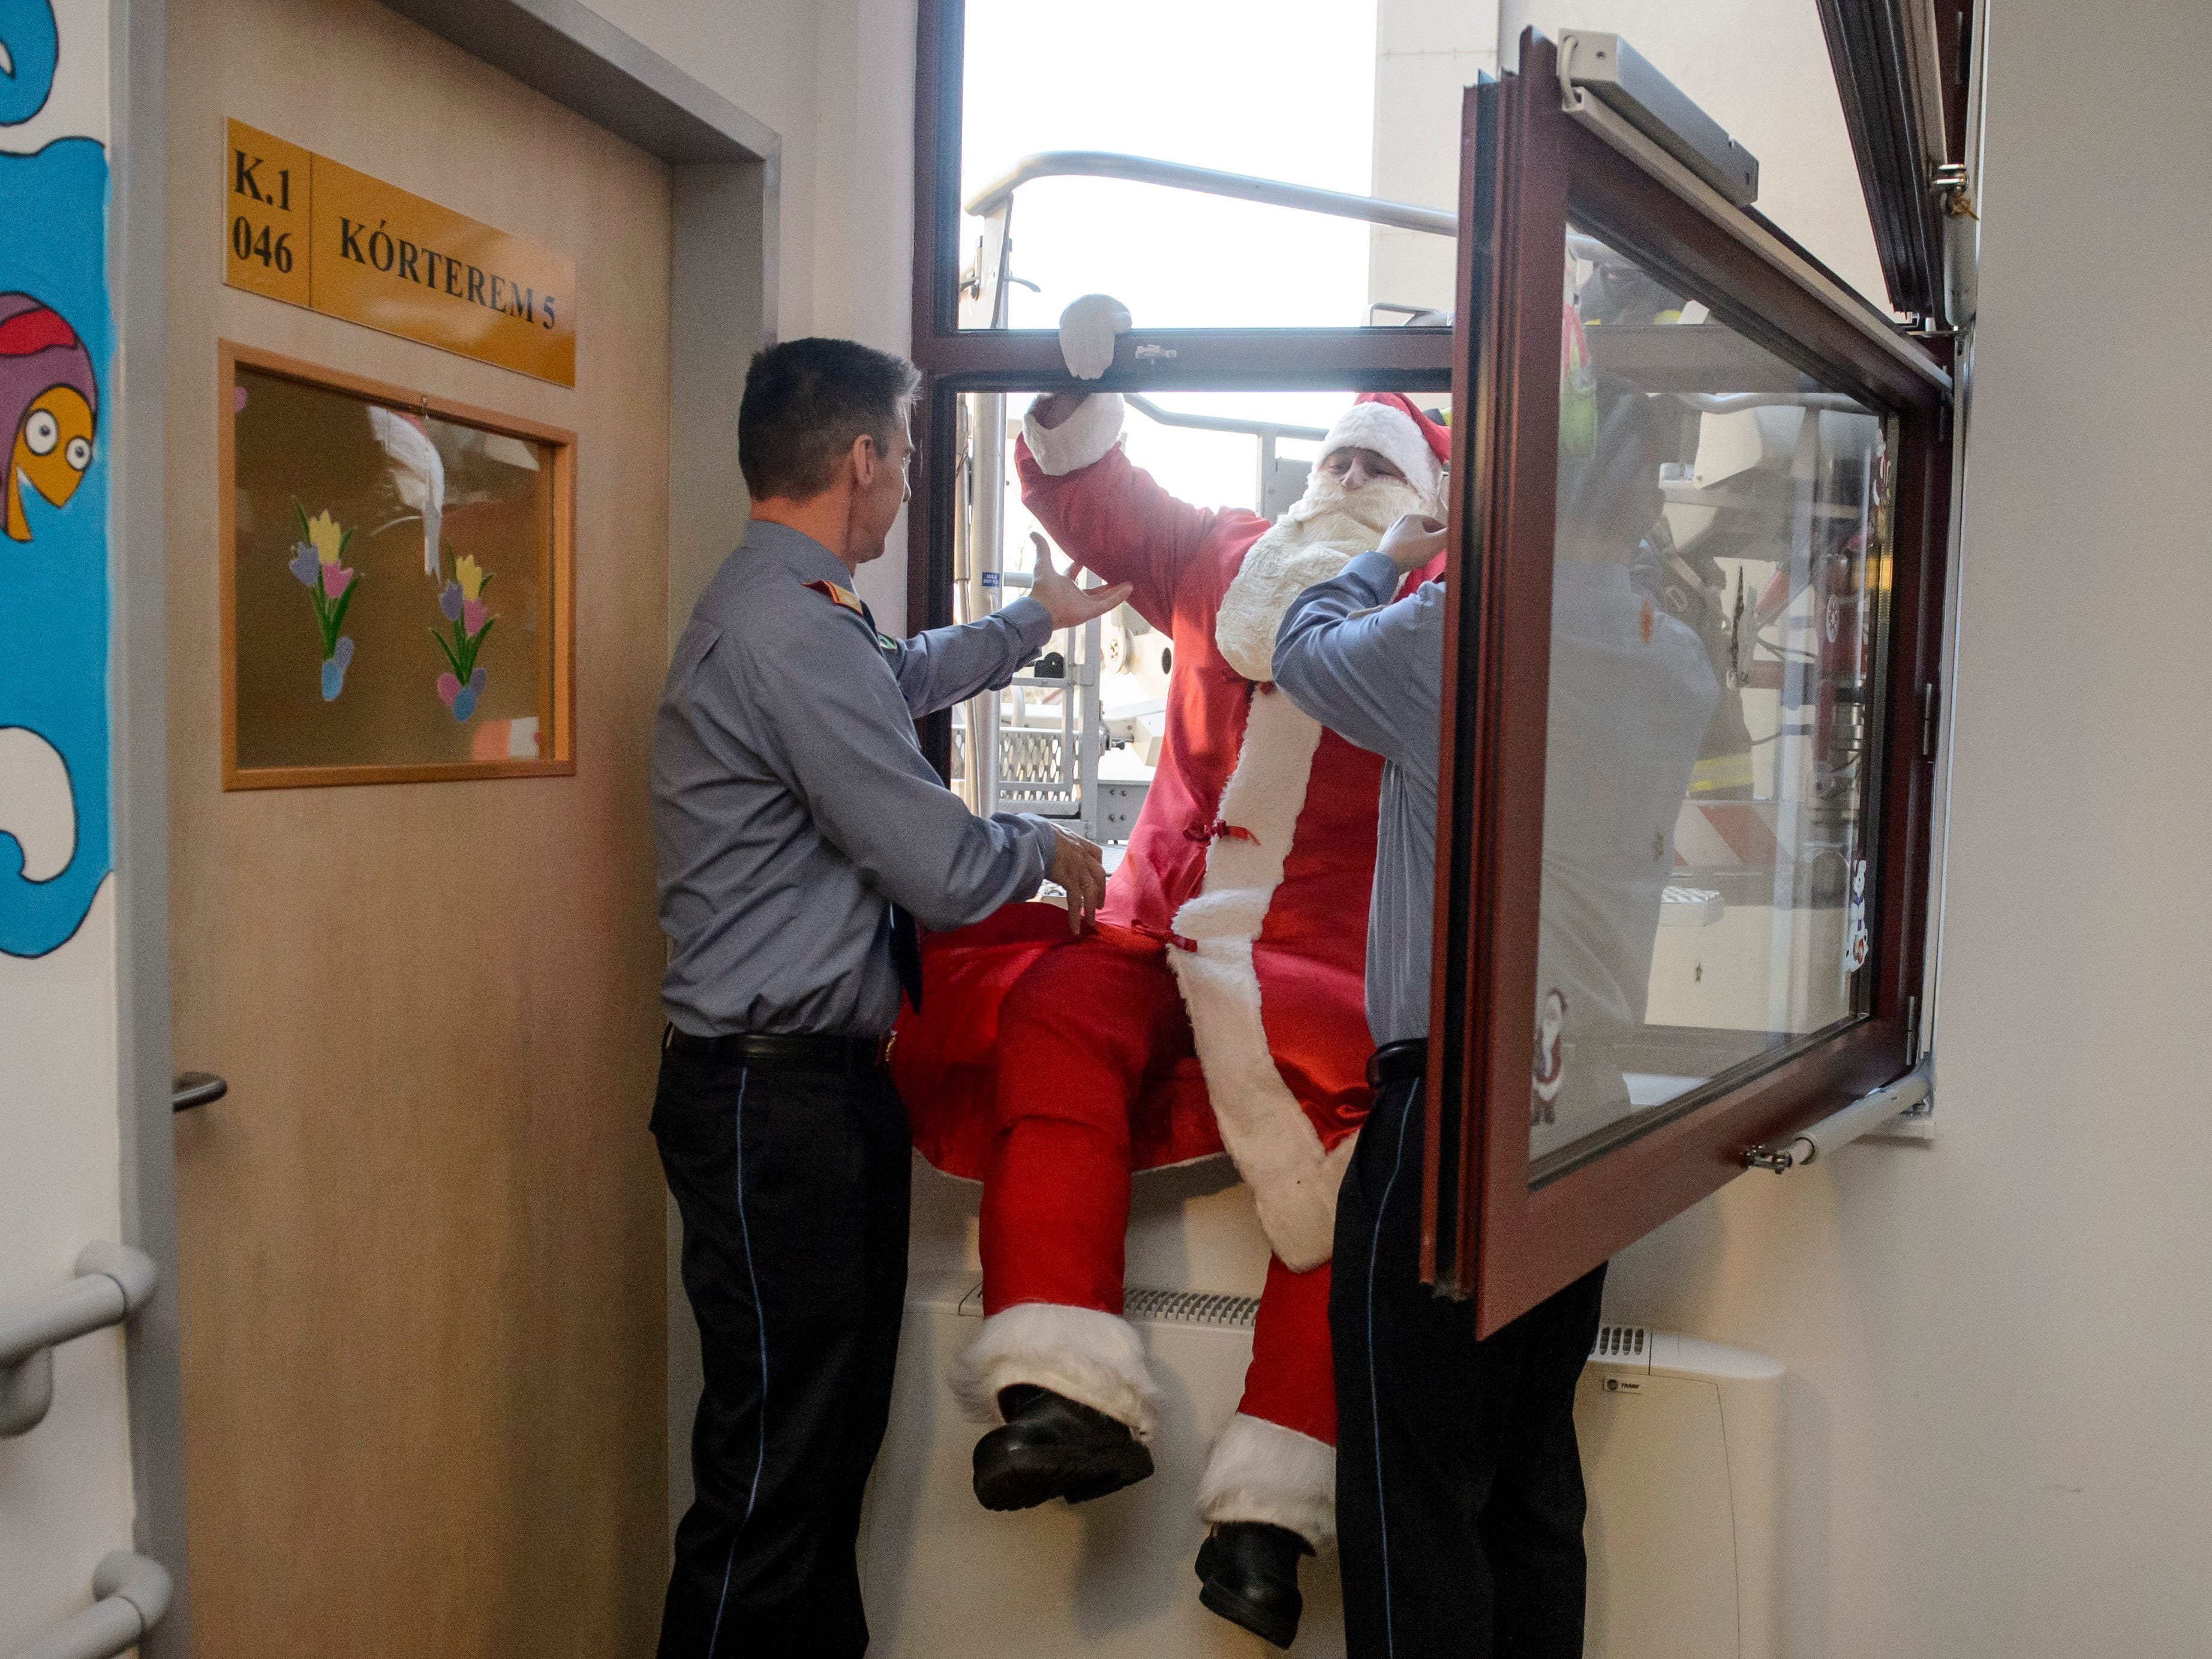 A firefighter dressed as Santa Claus enters through a window into a children's ward from the basket of a fire engine in Markhot Ferenc Hospital in Eger, Hungary, Wednesday, Dec. 5, 2018.